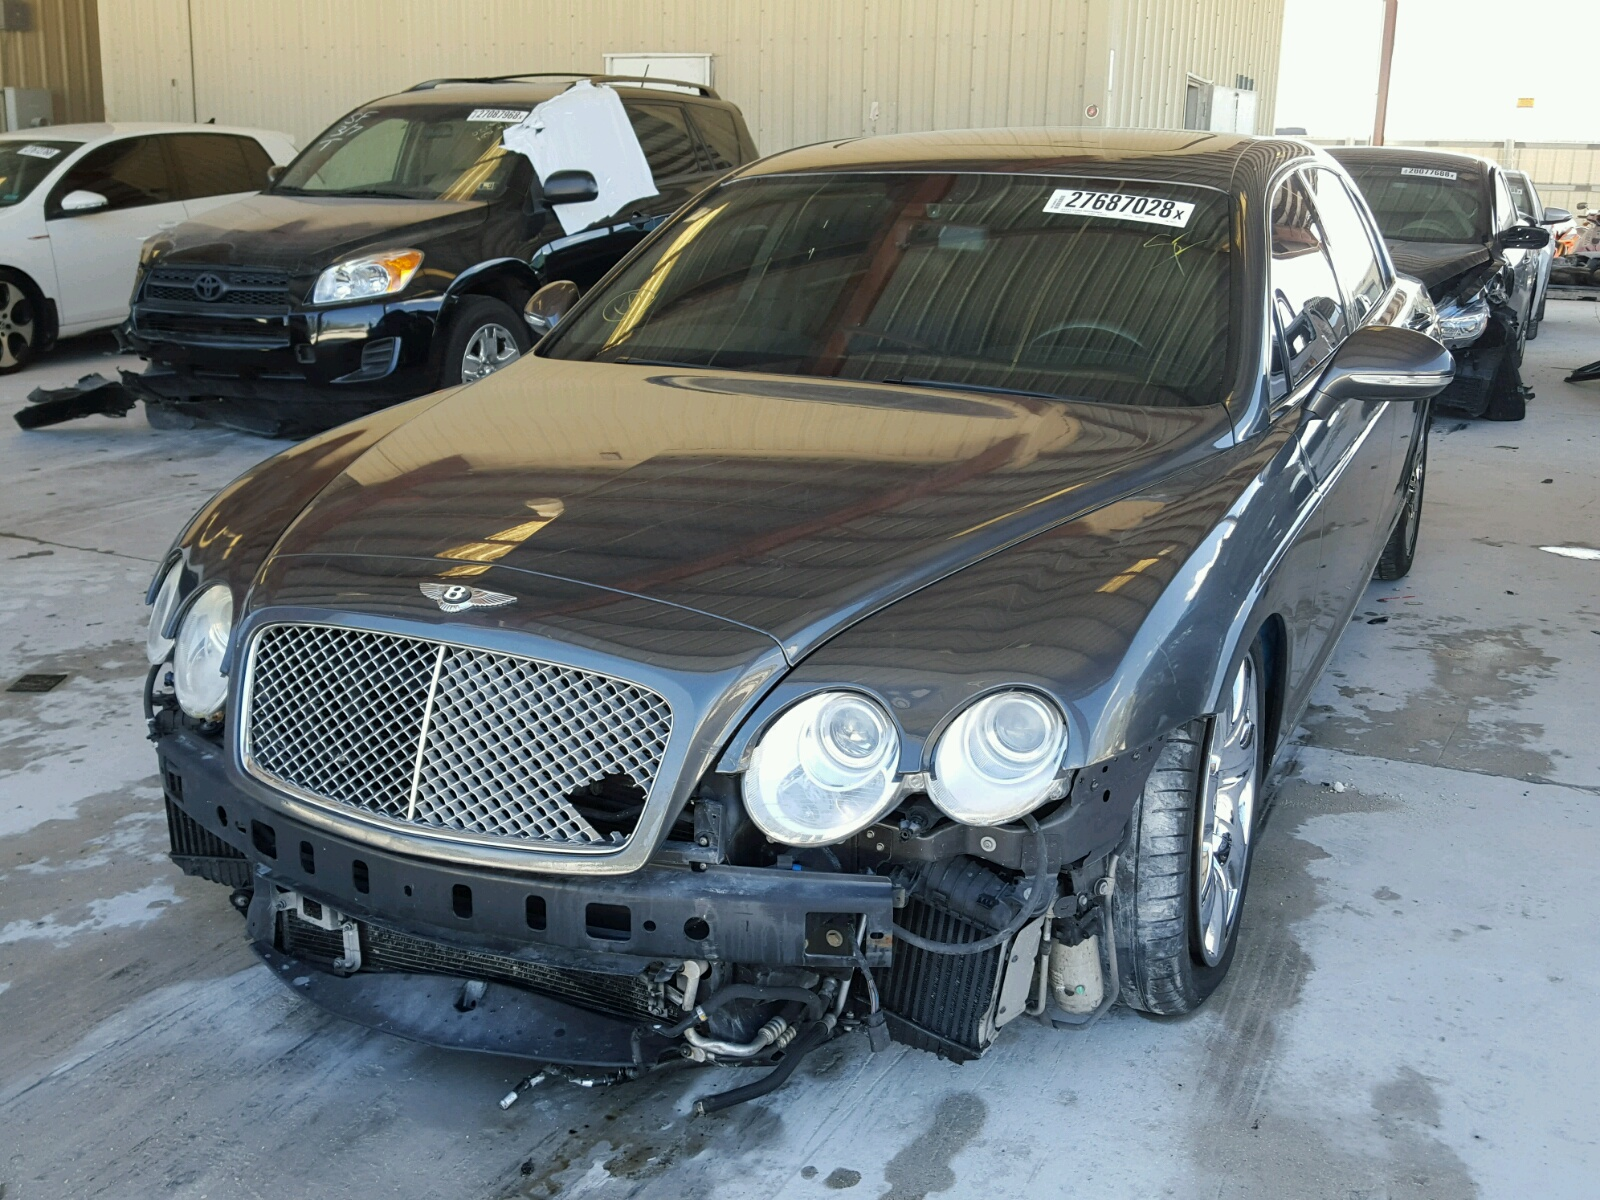 dollar a used sale an is features examination bentley of gettyimages exactly ultraluxury driver kind for car anyway feature what and salvage deal vehicles